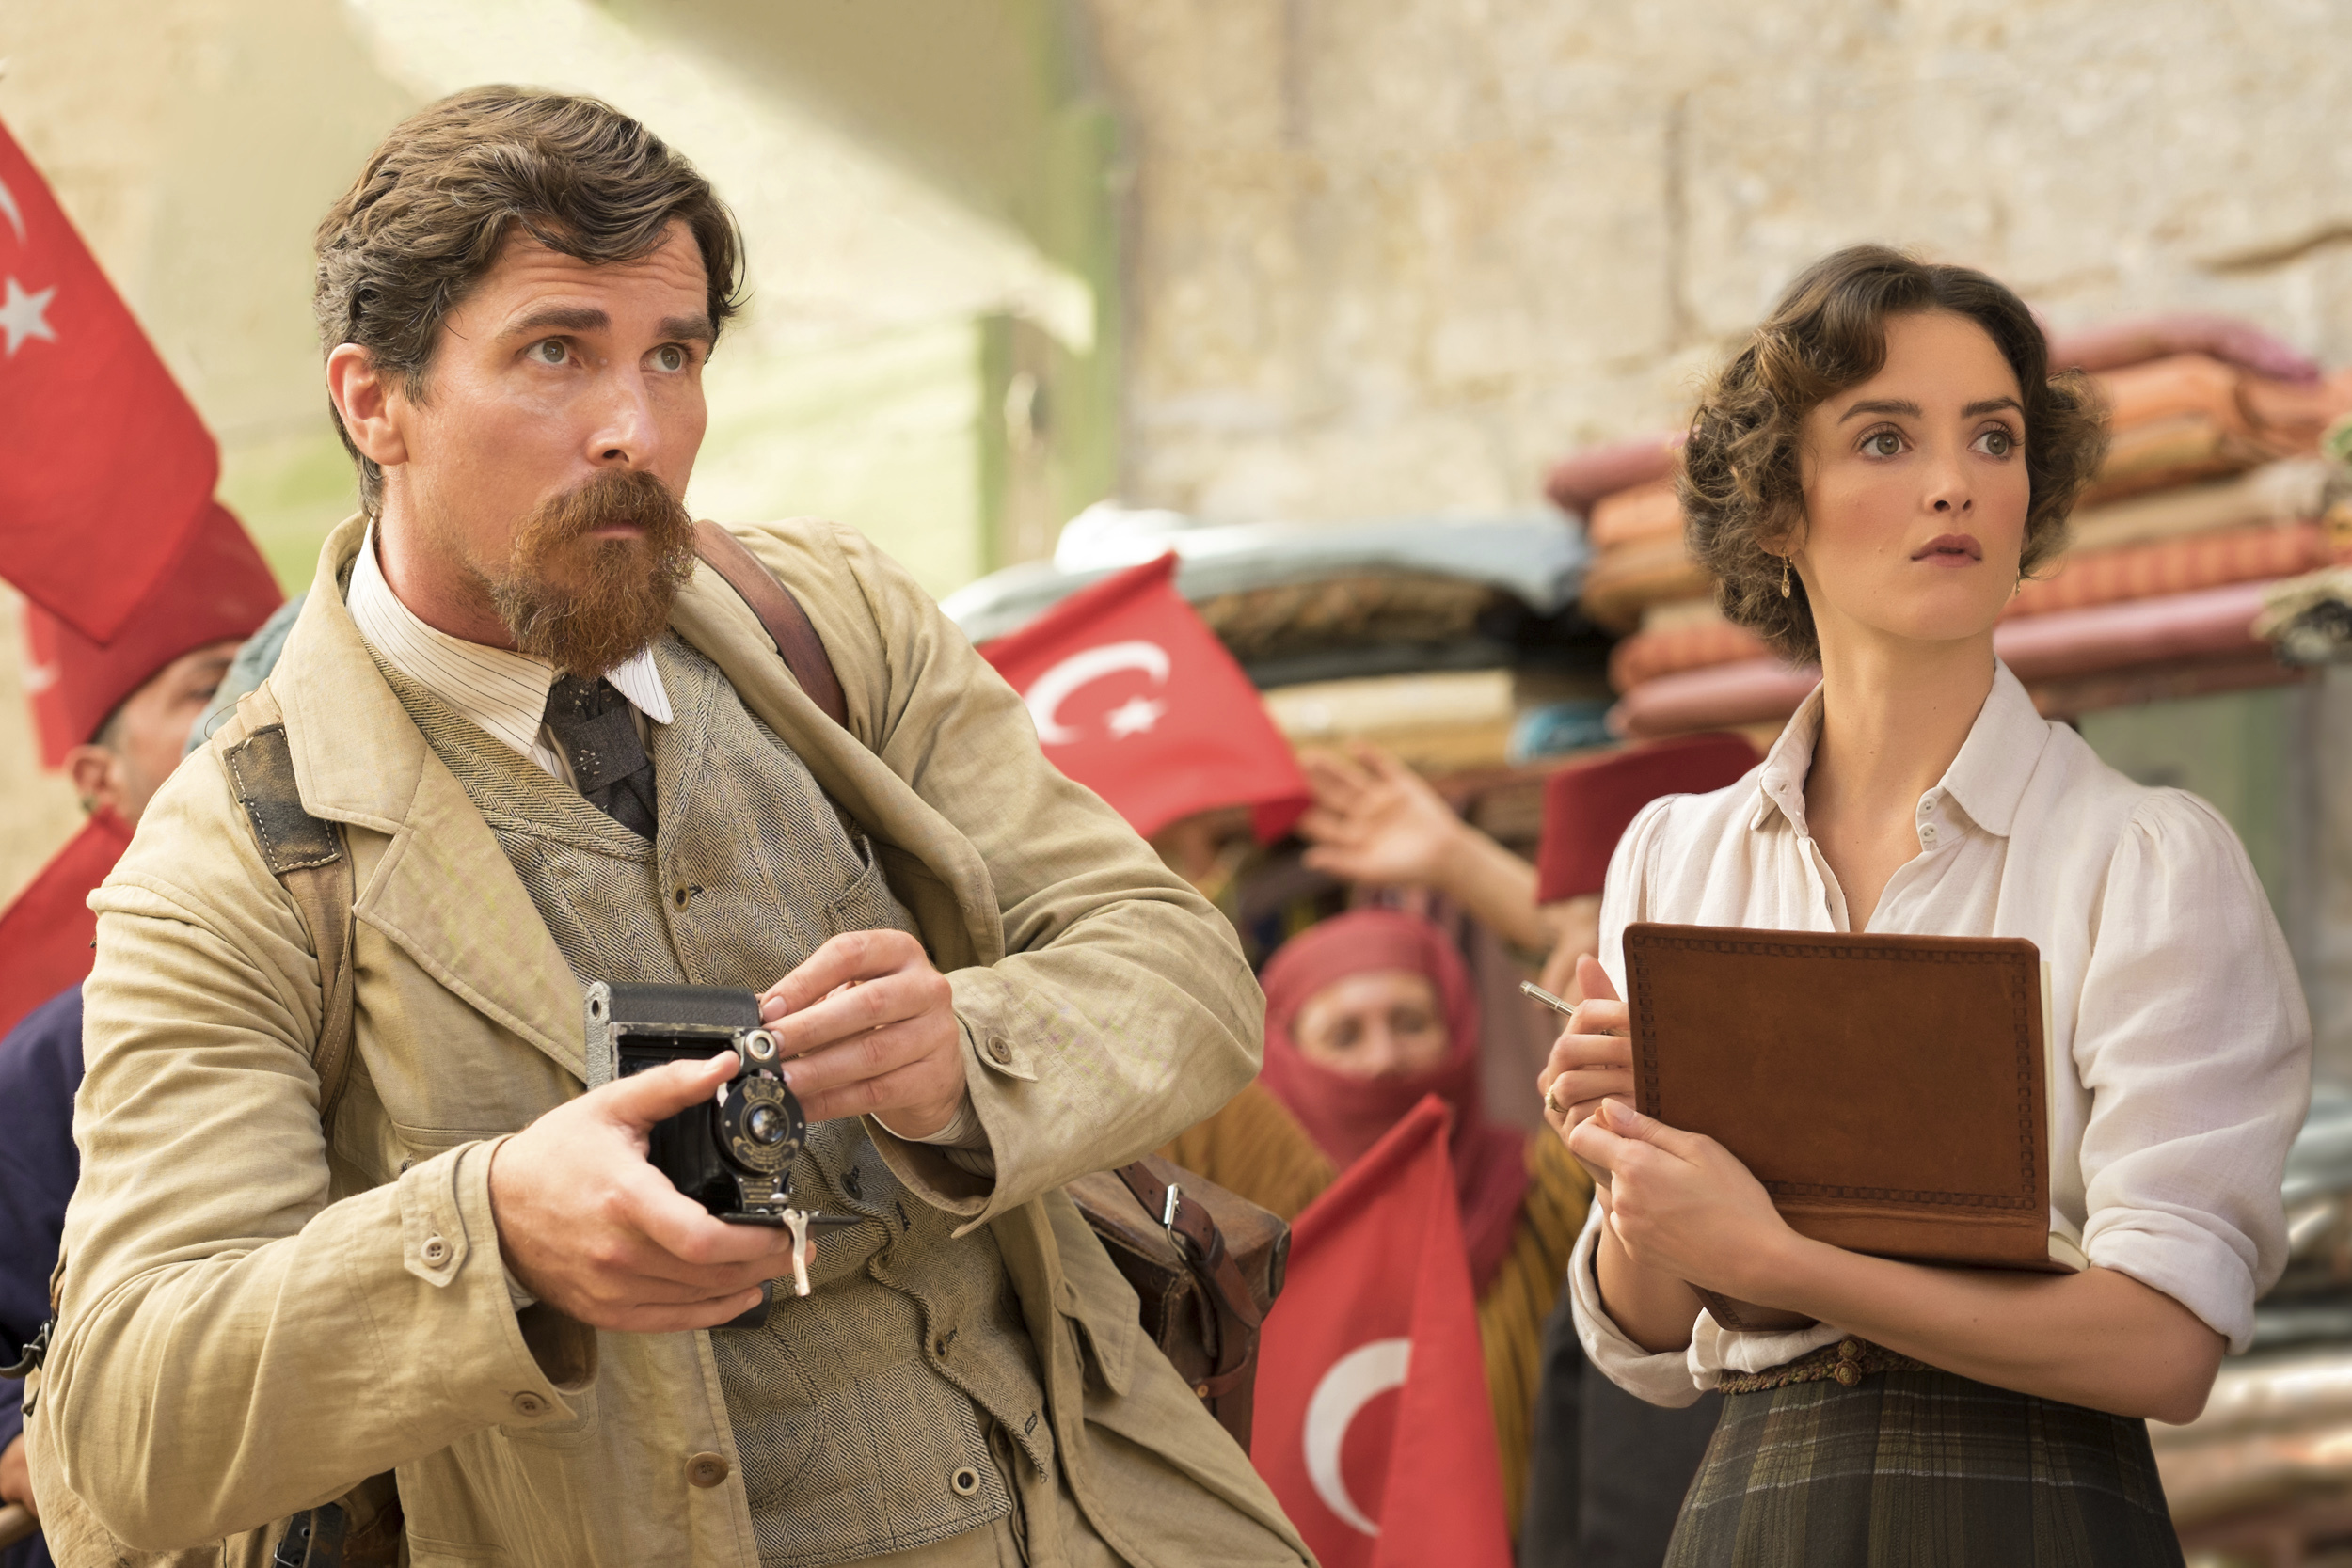 """This image shows Christian Bale (right) and Charlotte Le Bon in a scene from """"The Promise."""" (Jose Haro/Open Road Films via AP)"""